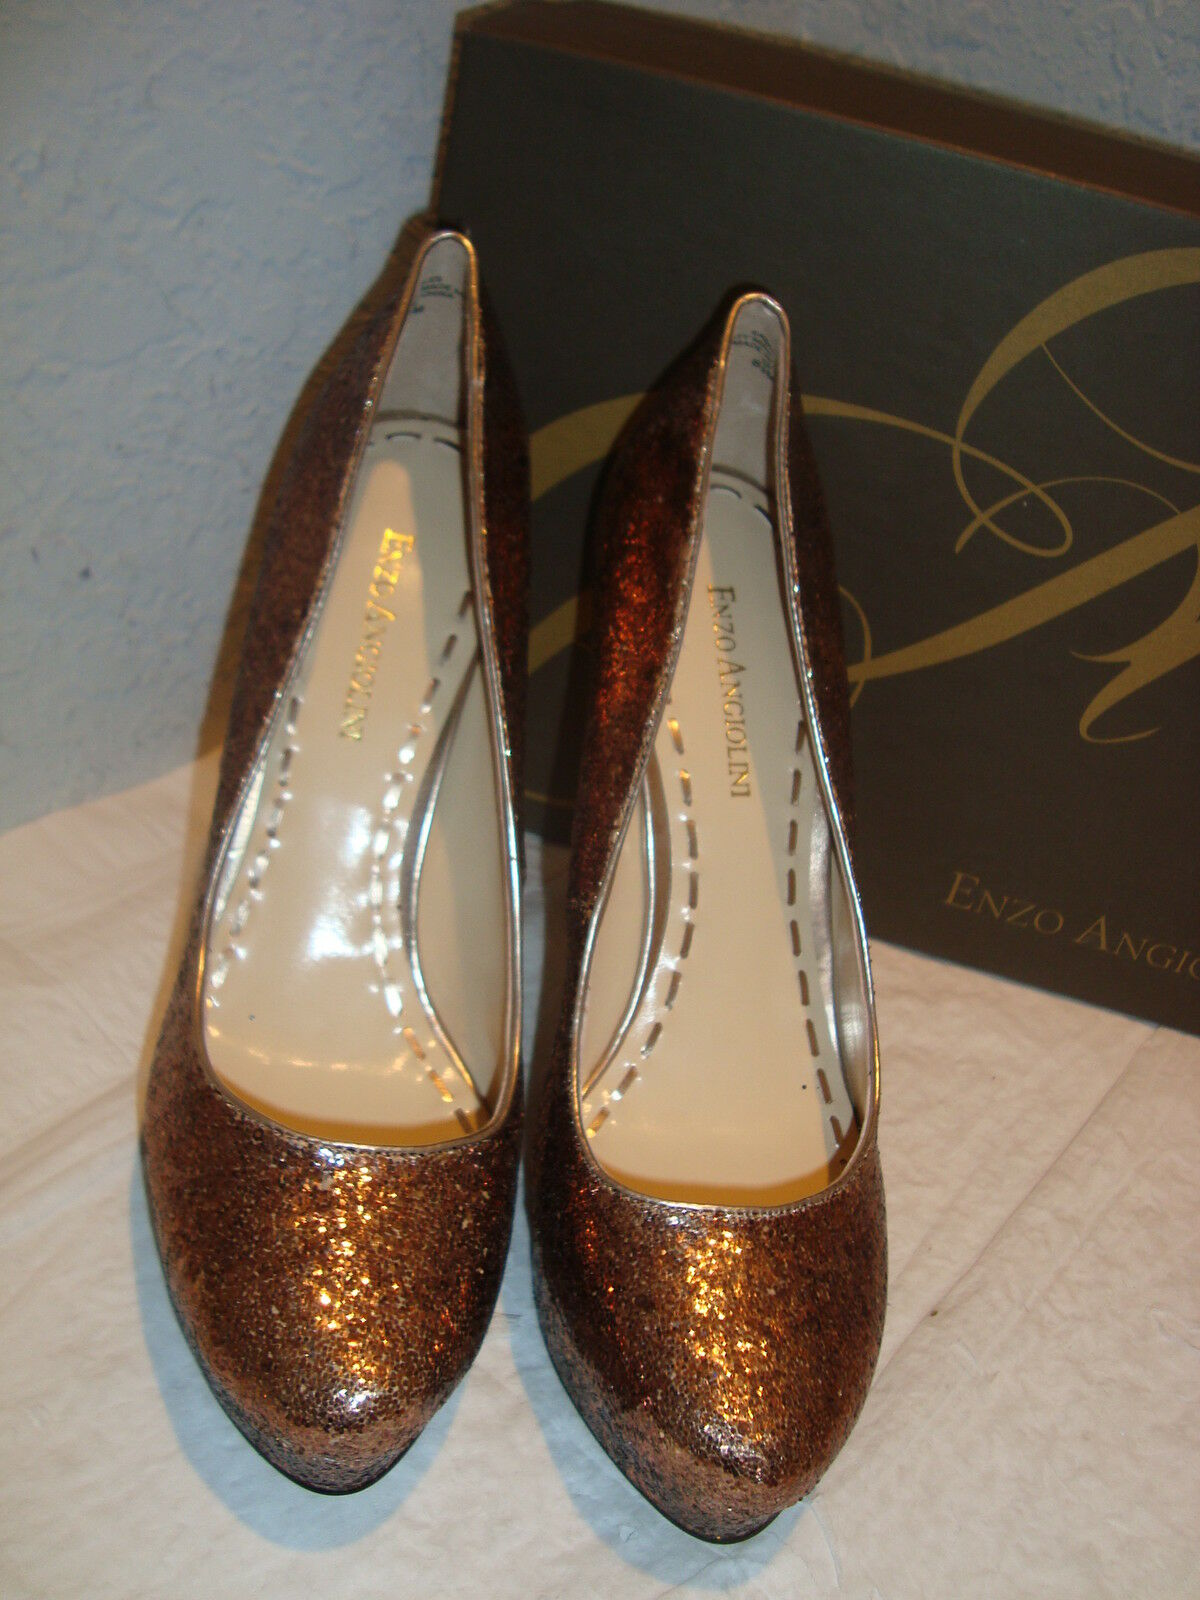 New Enzo Heels Angiolini Donna Smiles Gold Heels Enzo Shoes 8.5 Medium bdc3a2